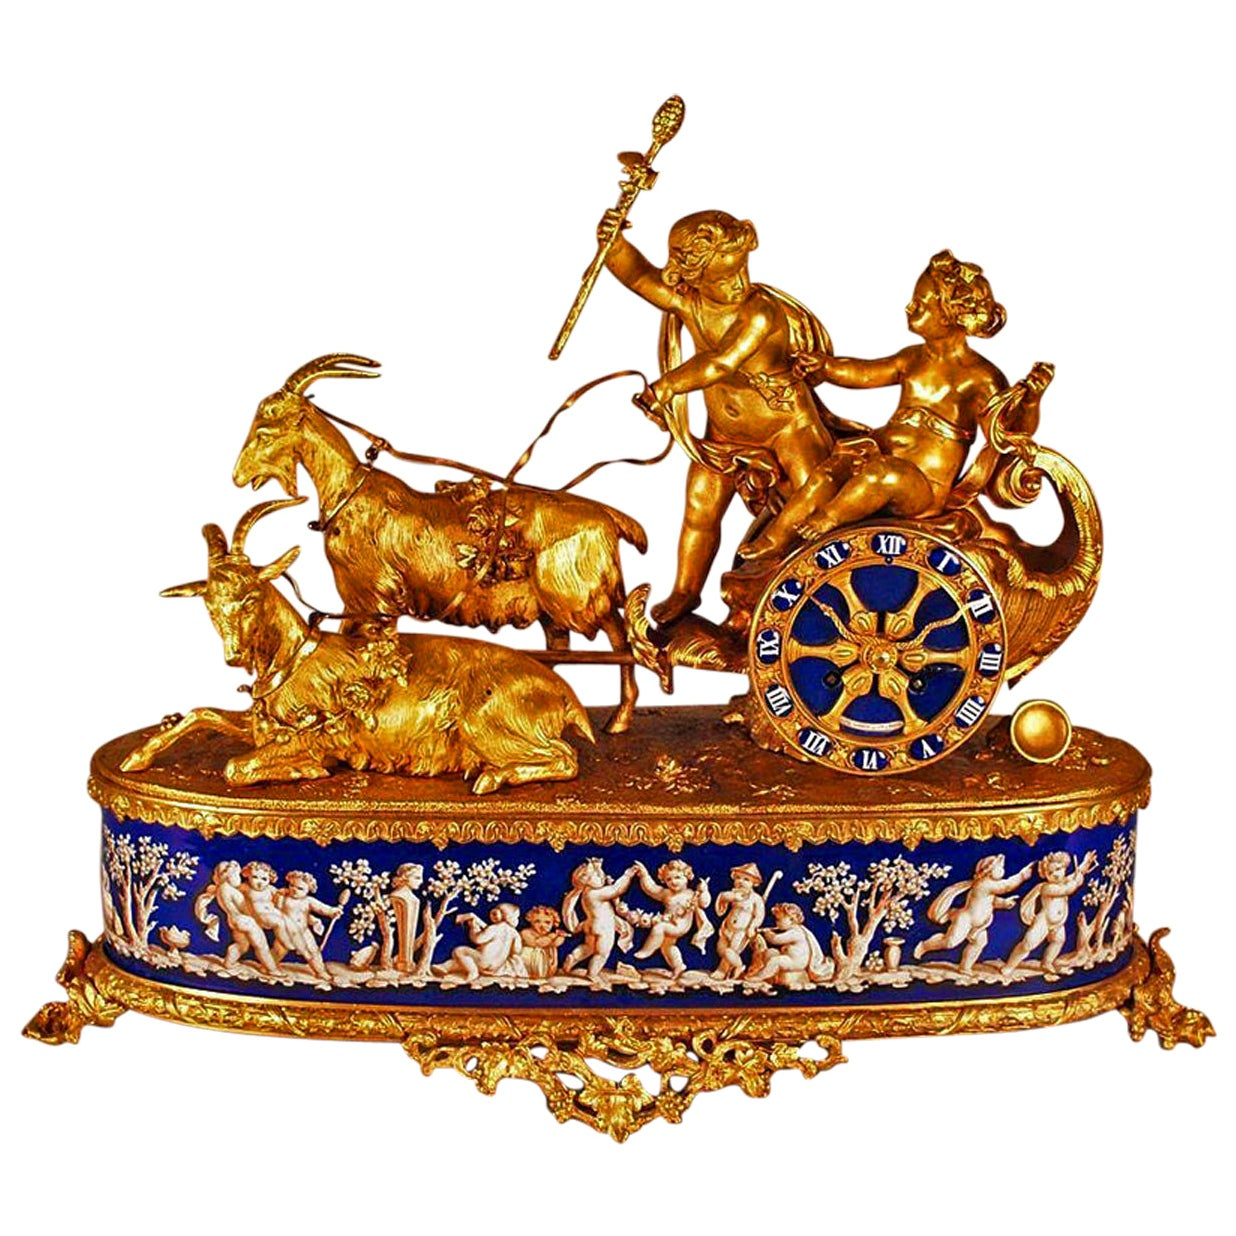 French Gilt Bronze Mantel Clock by Alphonse Alph Giroux, Signed, circa 1860